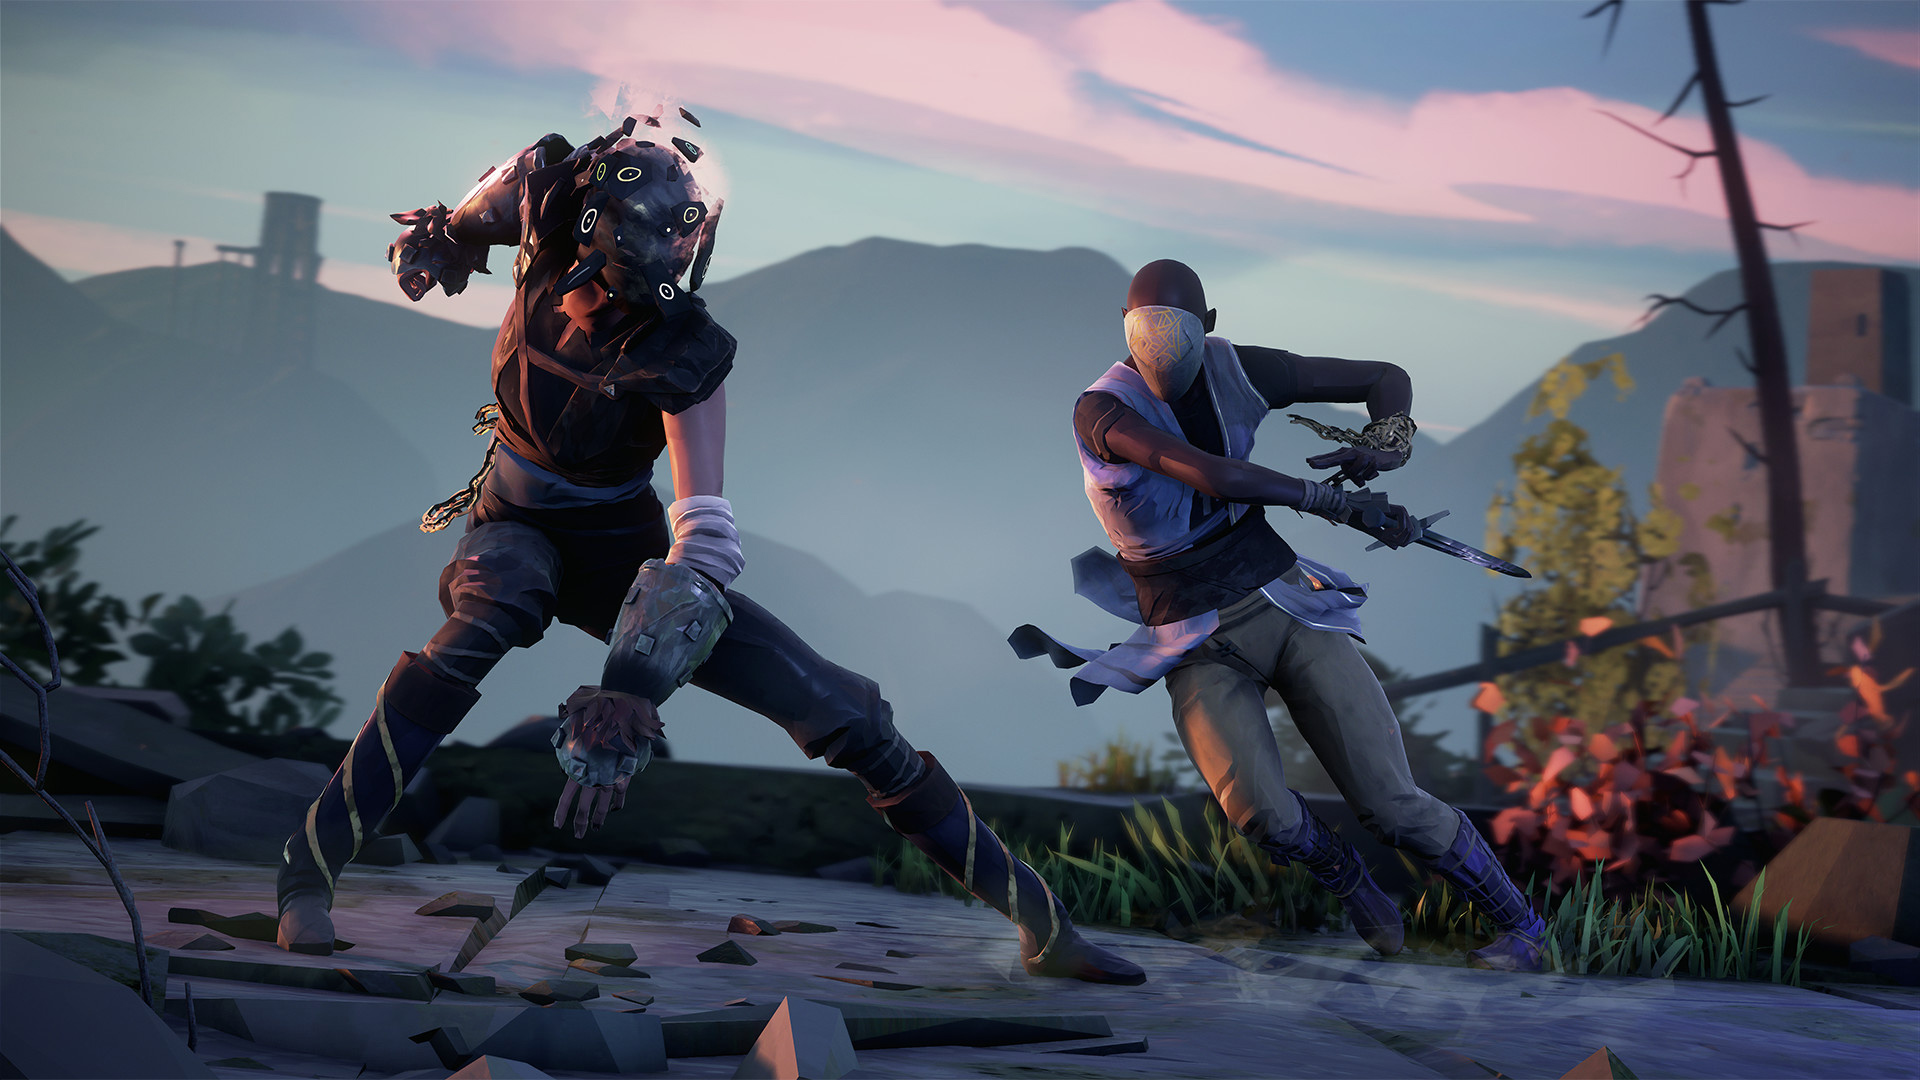 Melee combat game Absolver still looks intriguing screenshot